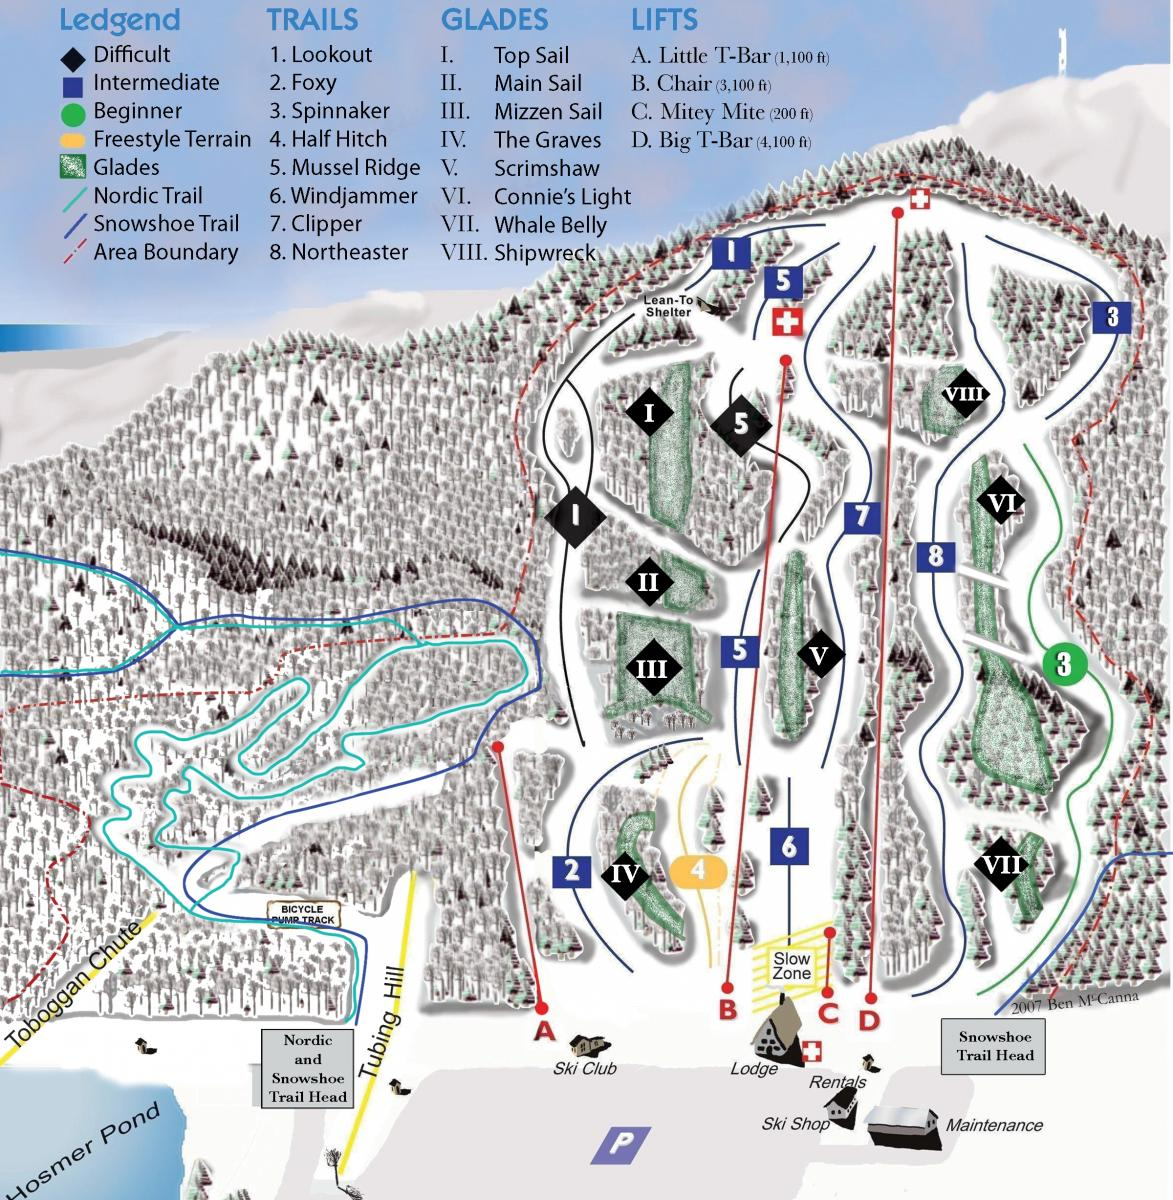 Double treat: Camden Snow Bowl and Home Kitchen Cafe – Maine Travel ...